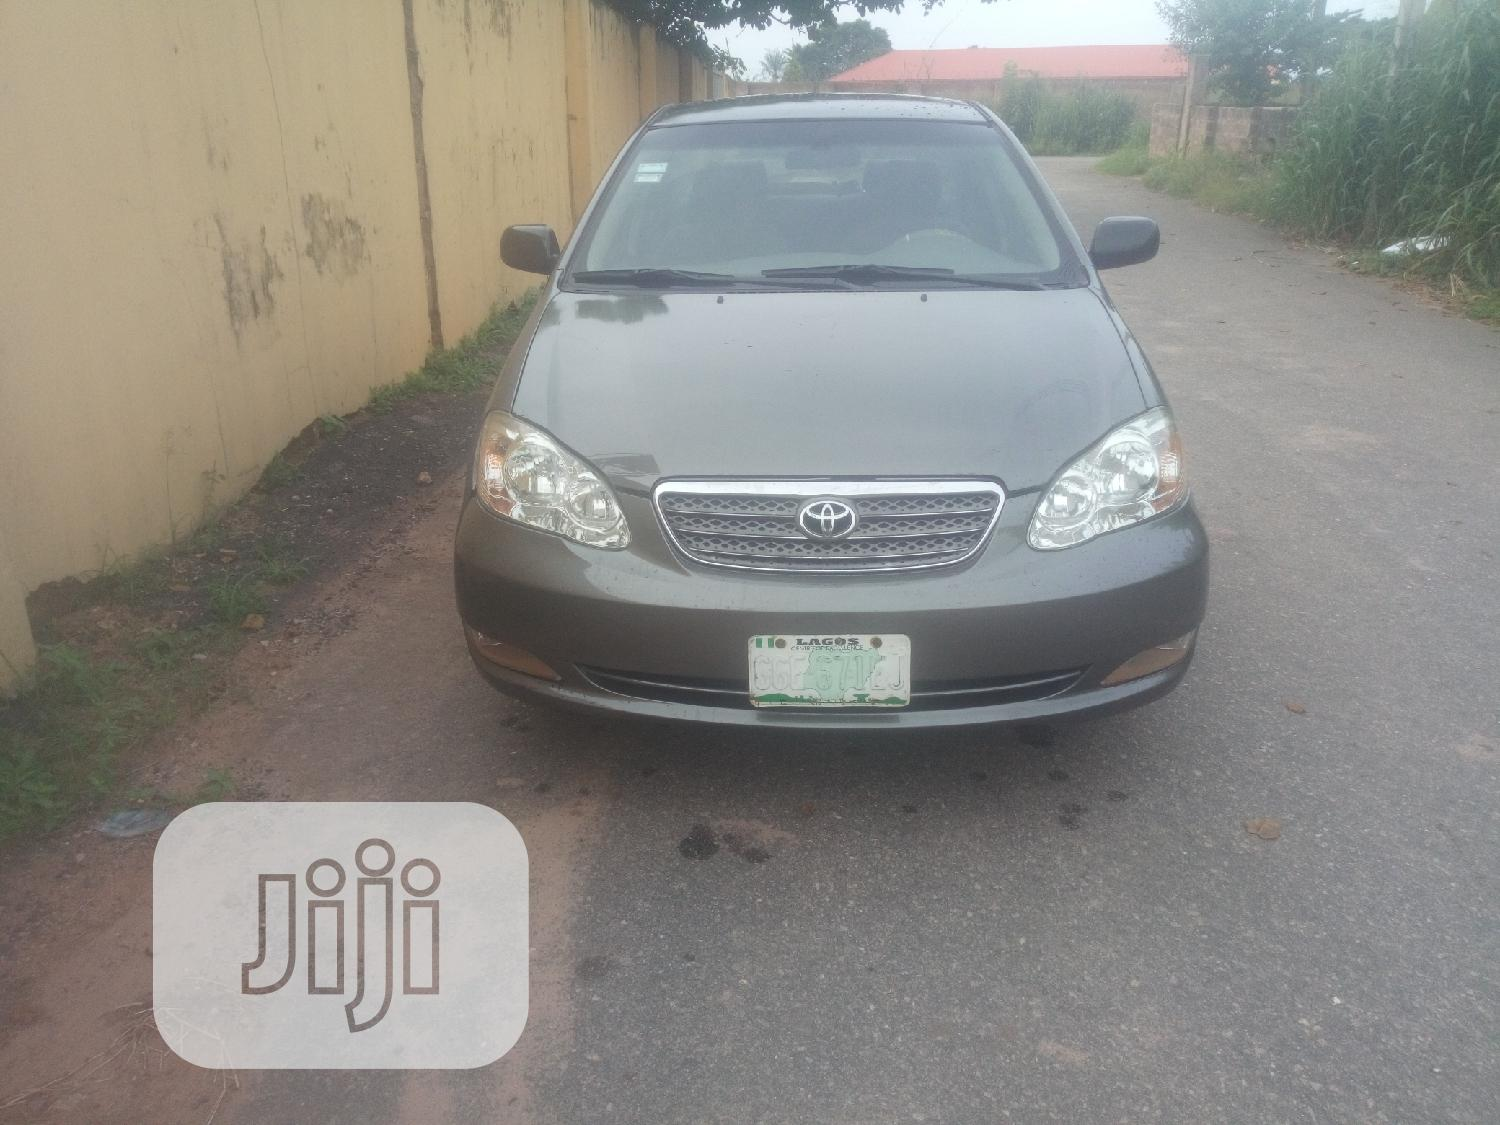 Toyota Corolla 2003 Sedan Gray In Aba North Cars Dean Nosakhare Jiji Ng For Sale In Aba North Buy Cars From Dean Nosakhare On Jiji Ng